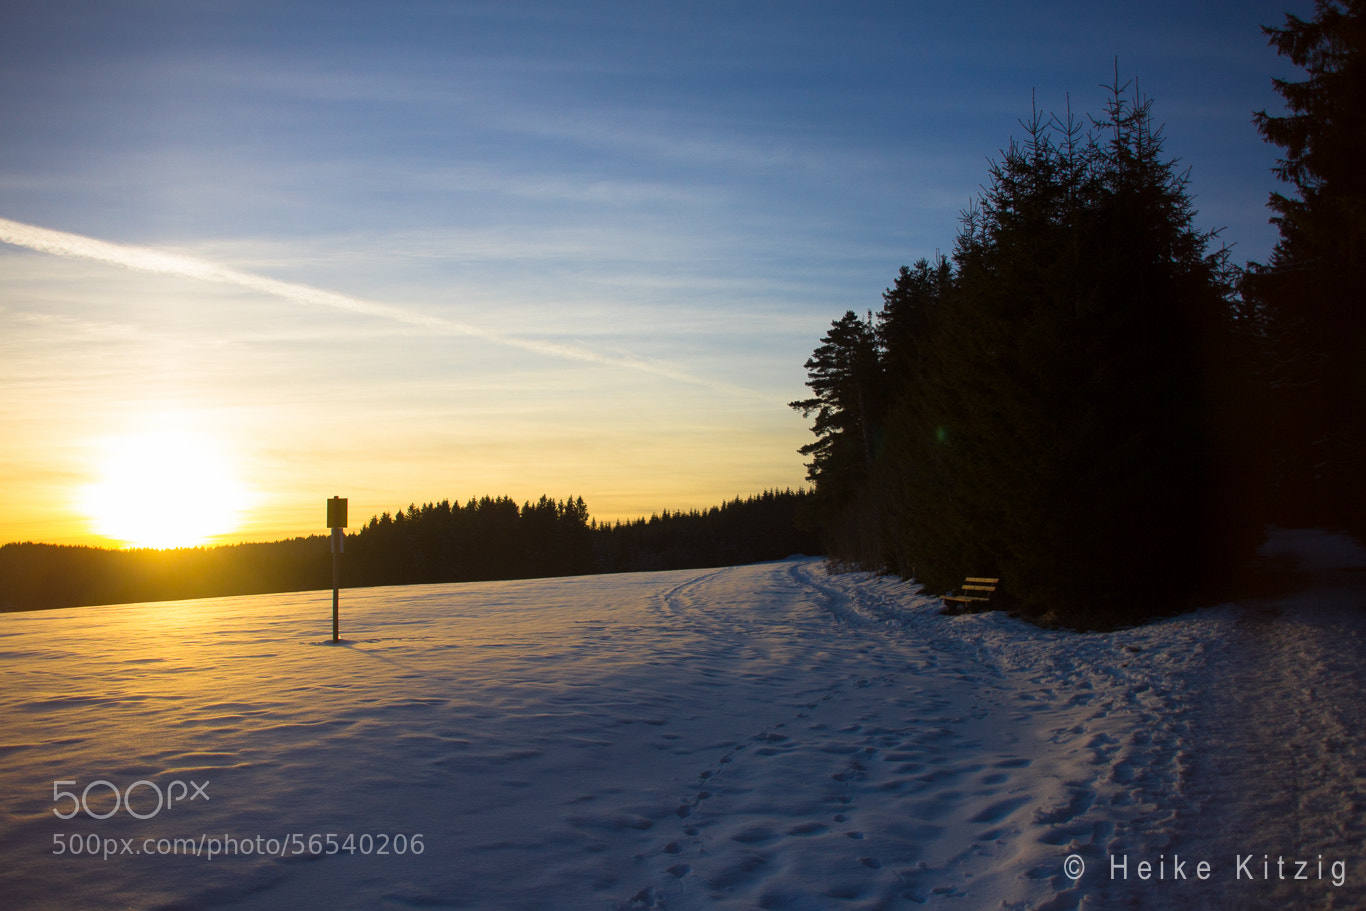 Photograph Black forest Germany 2 by Heike Kitzig on 500px